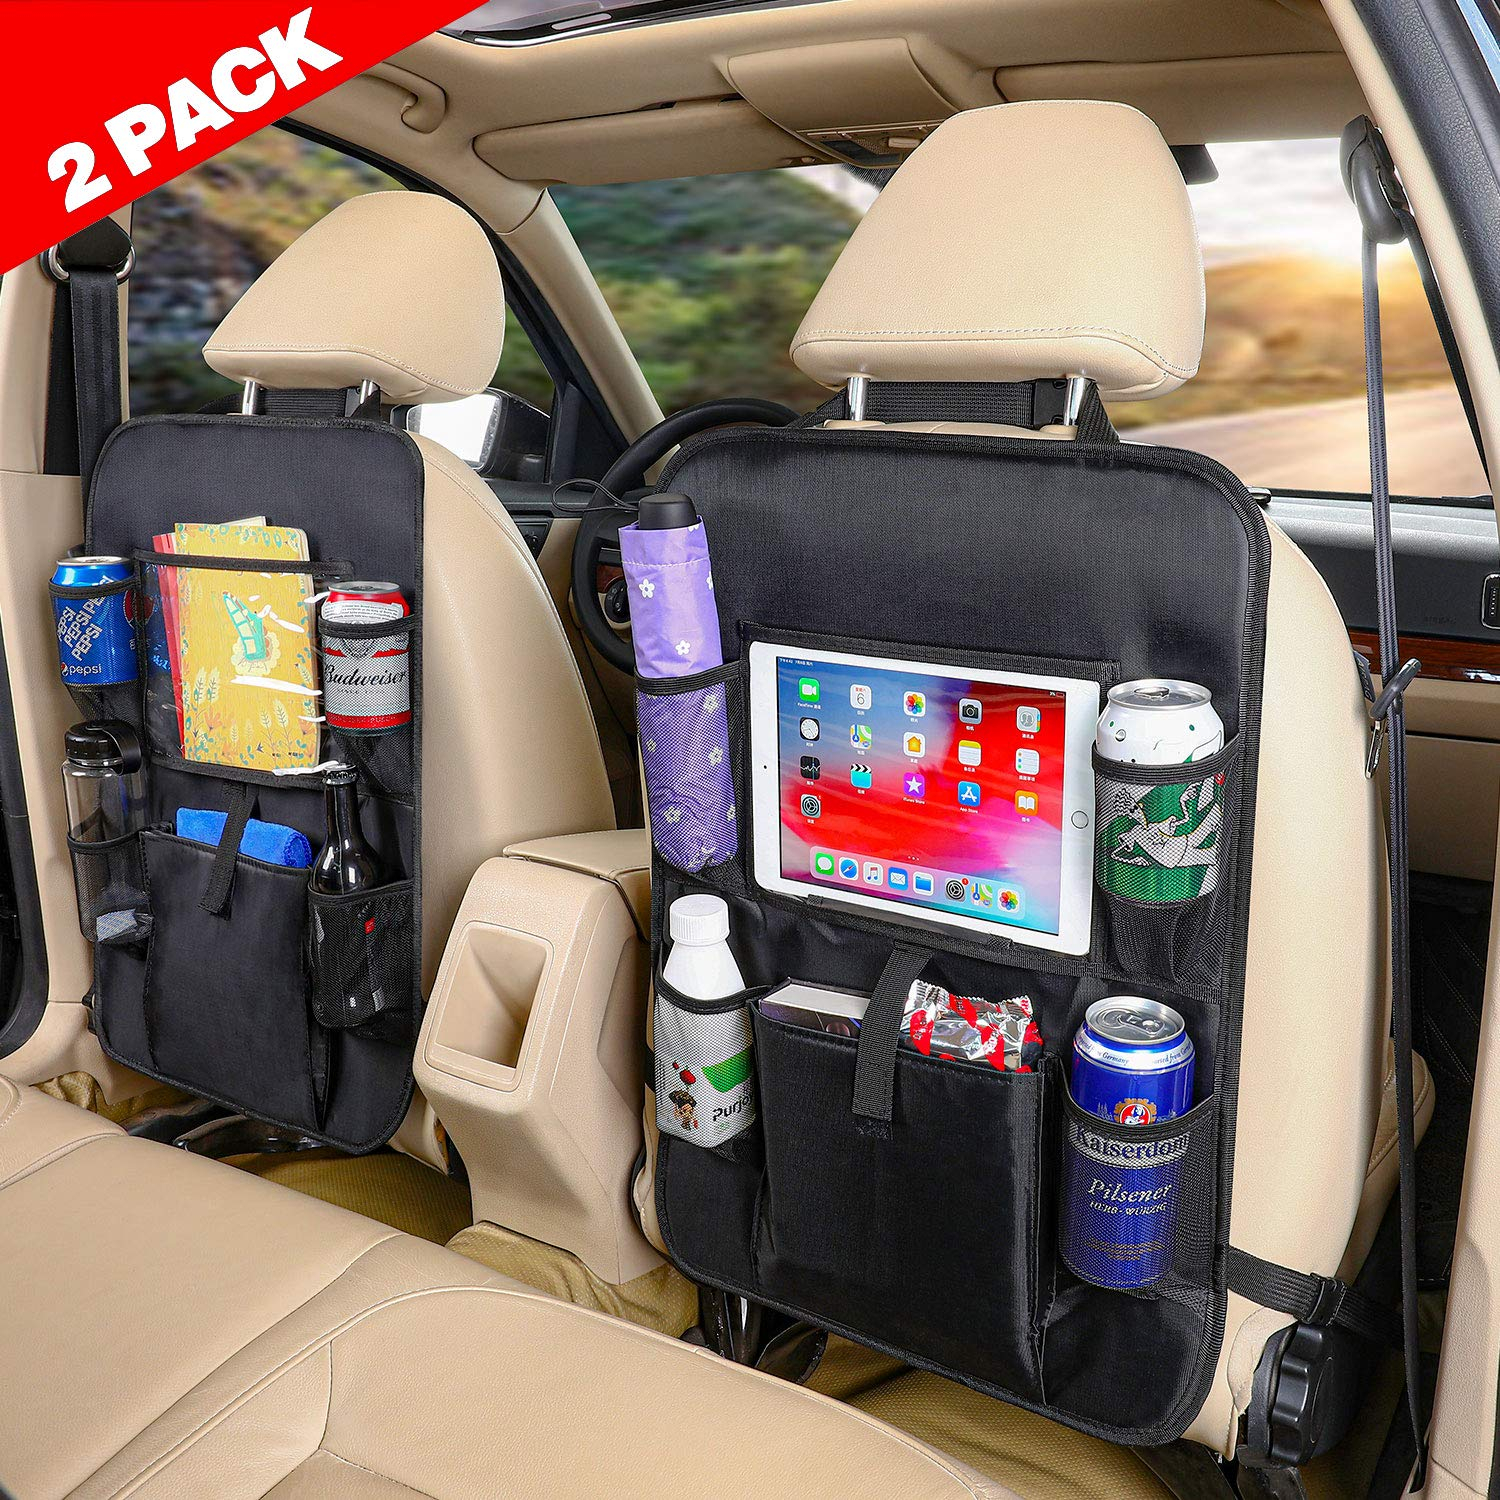 Car Backseat Organizer with Touch Screen Tablet Holder +Storage Pockets Kick Mats Car Seat Back Protectors Great Travel Accessories for Kids and Toddlers(2 Pack) by Carisma